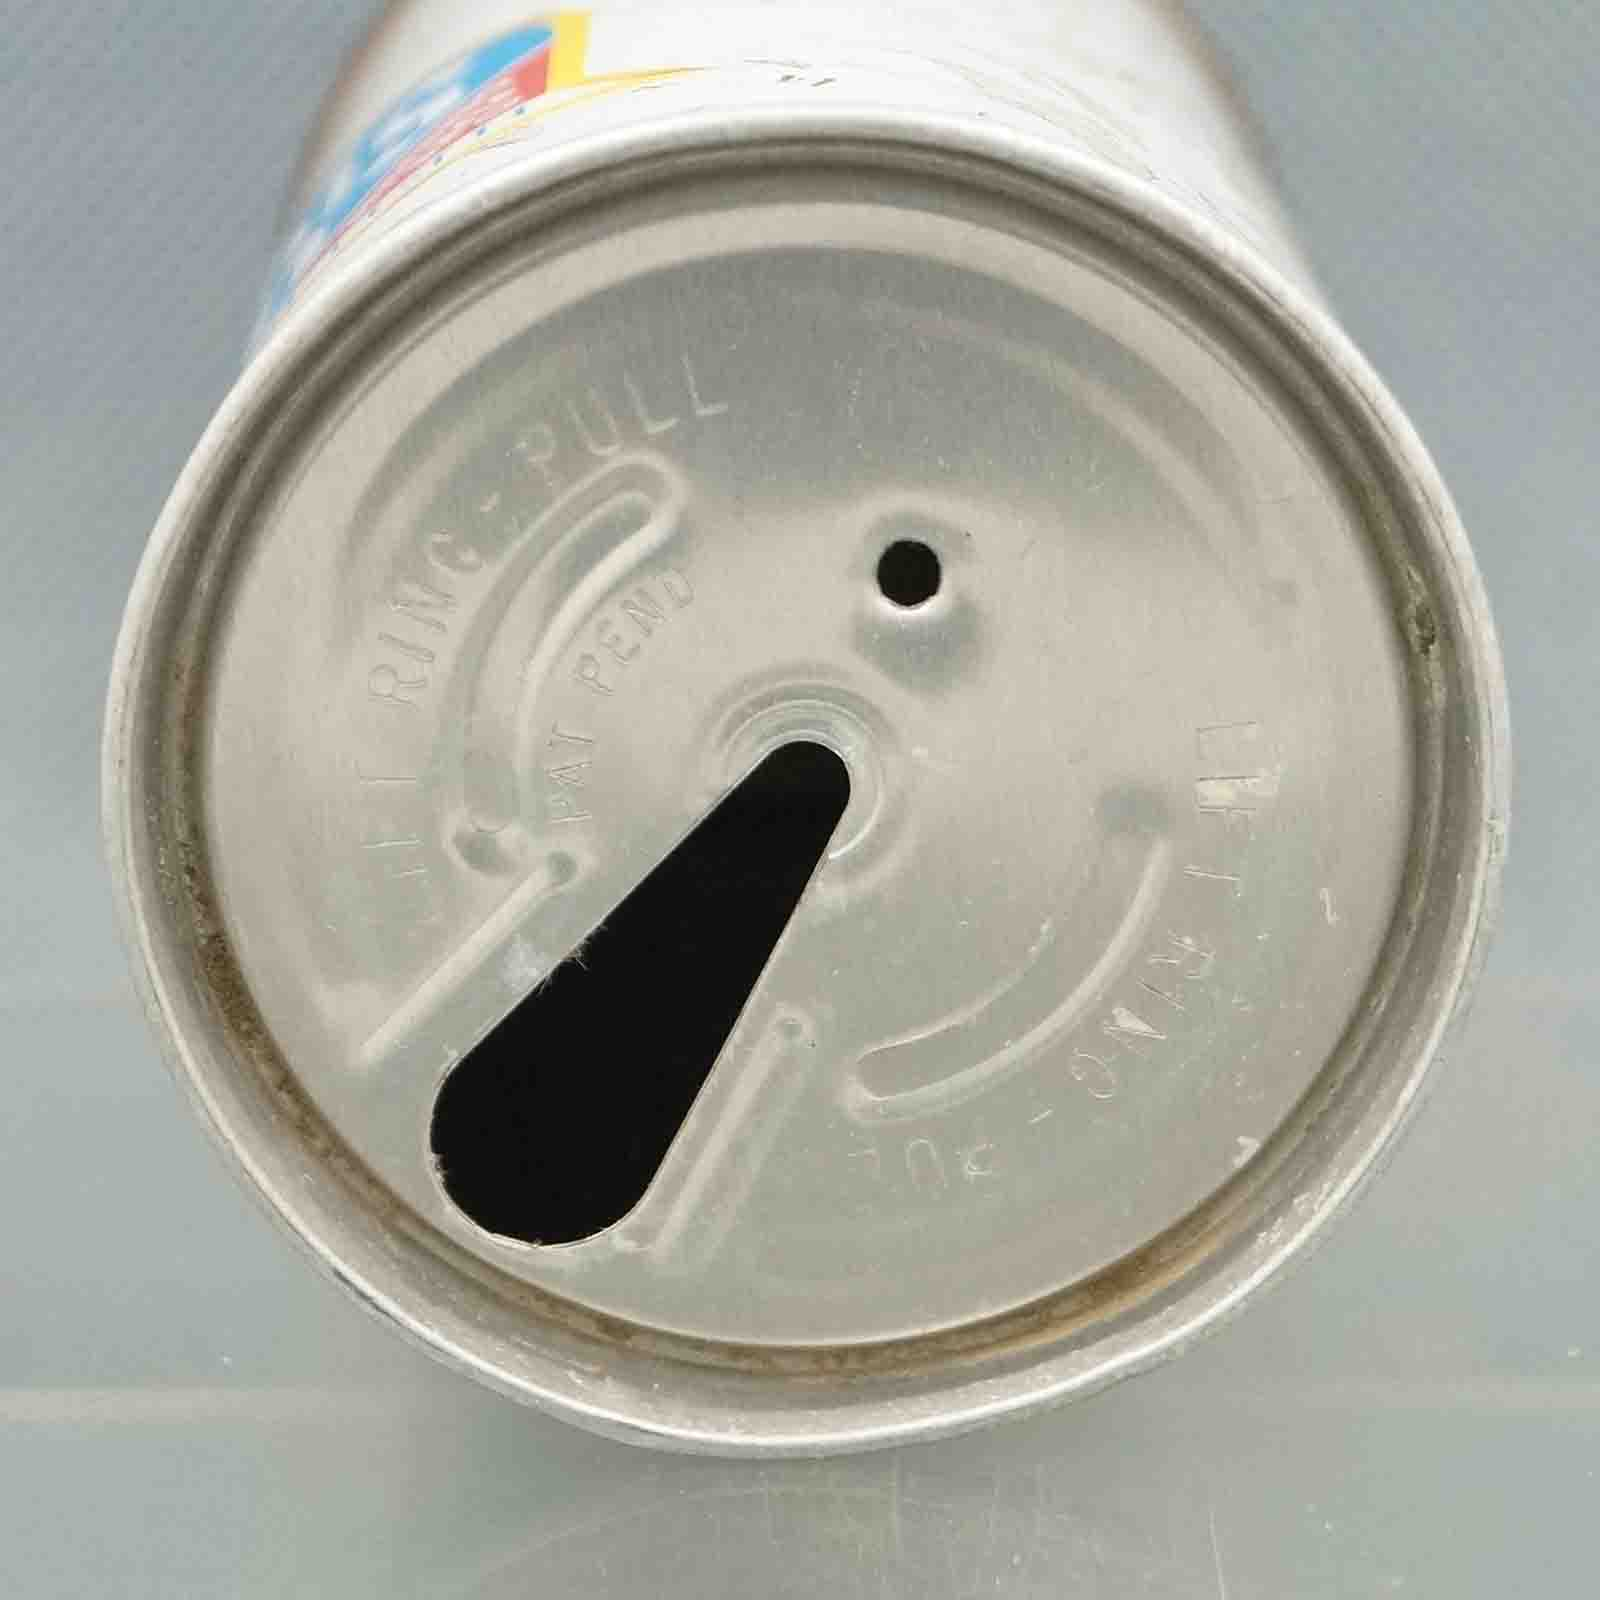 heilemans 75-22 pull tab beer can 5